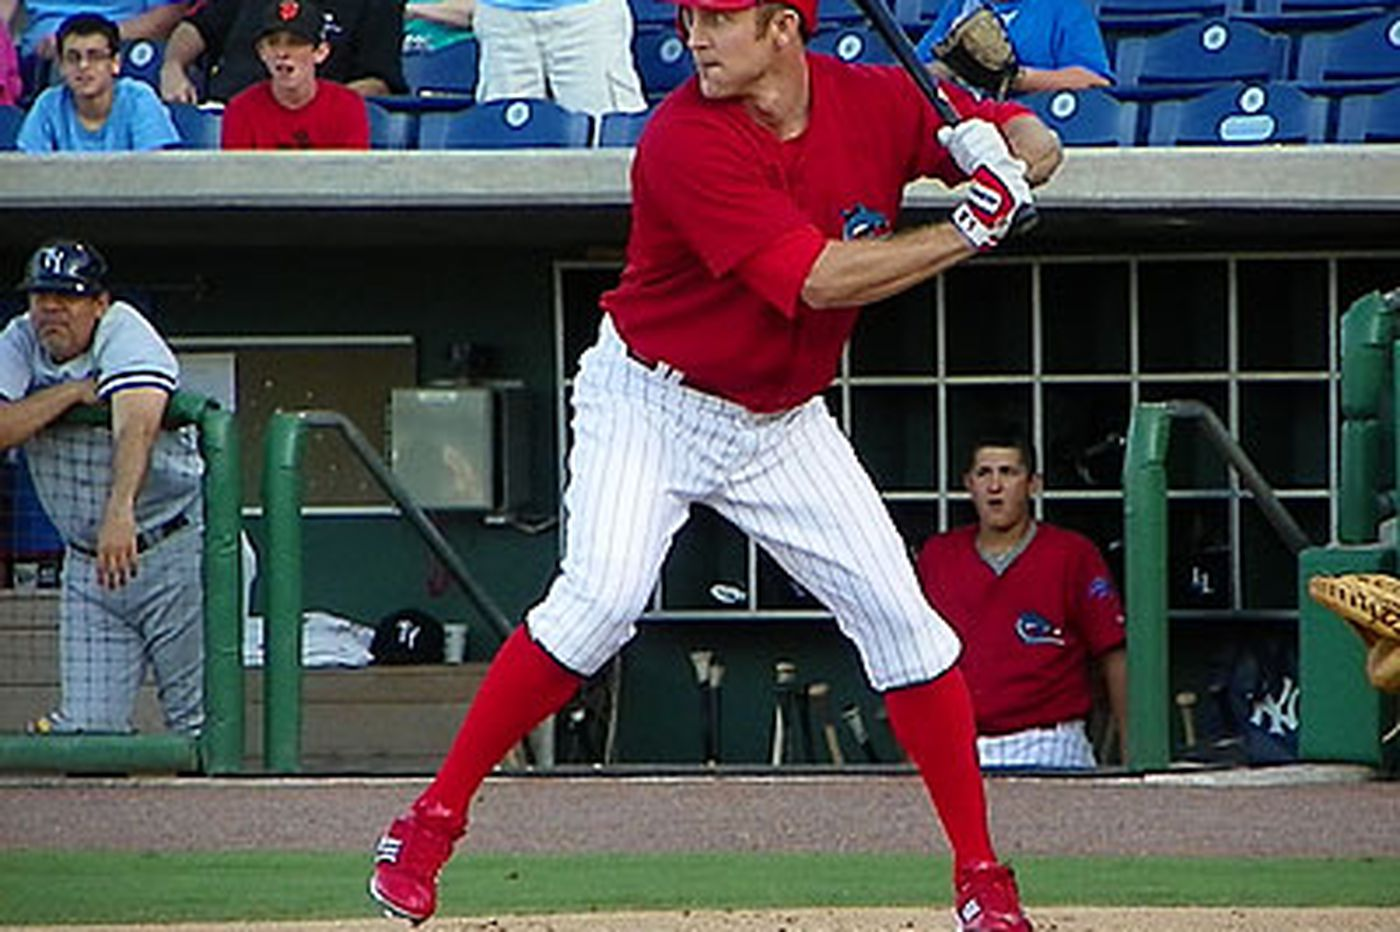 Phillies second baseman Chase Utley sees progress despite 0-for-5 night in rehab game with Clearwater Threshers